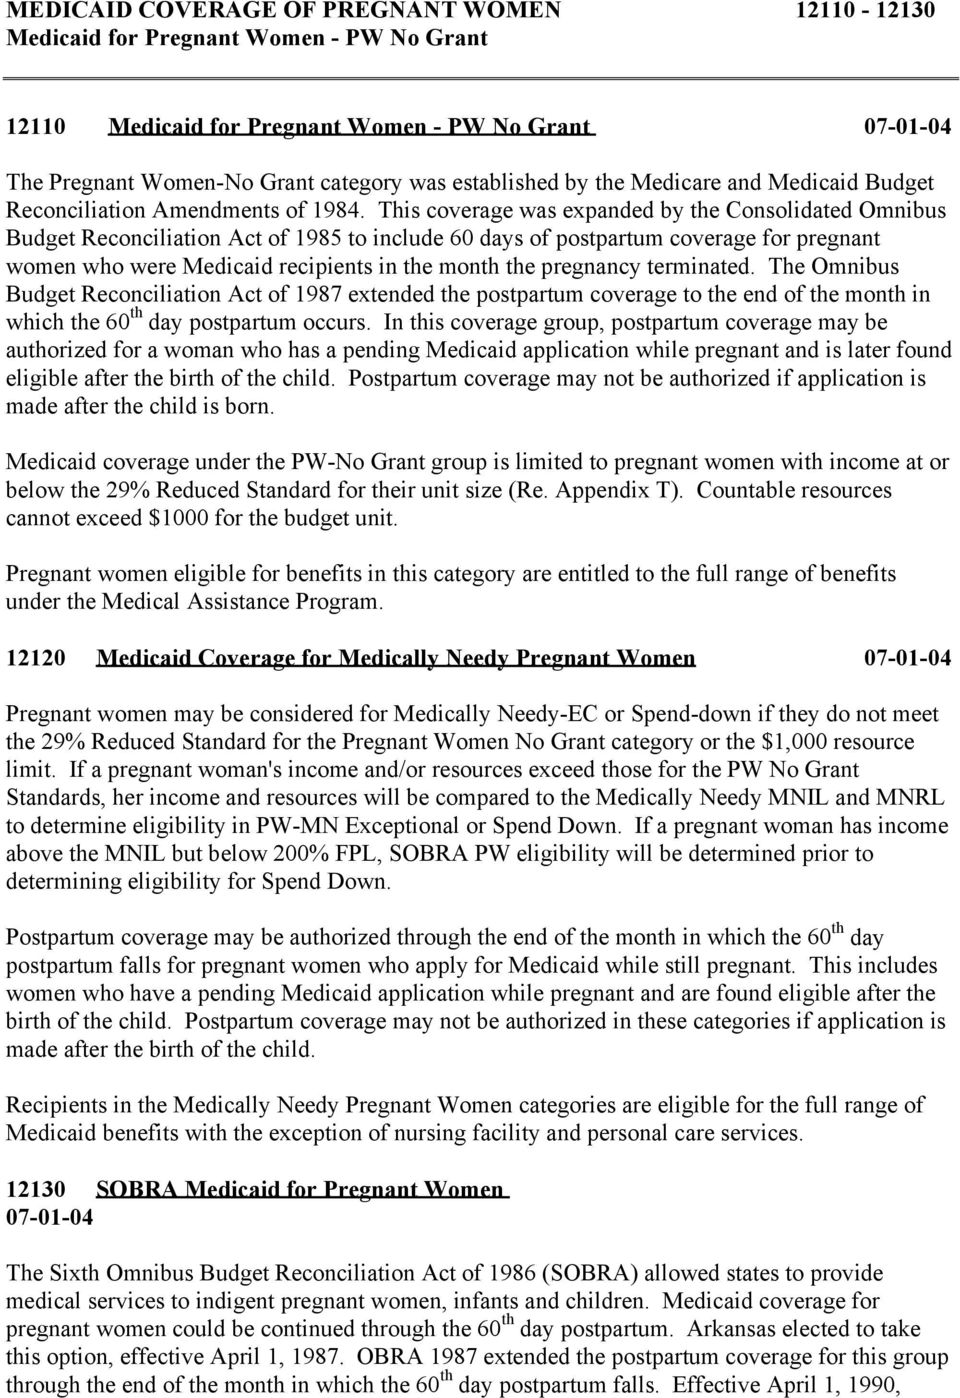 This coverage was expanded by the Consolidated Omnibus Budget Reconciliation Act of 1985 to include 60 days of postpartum coverage for pregnant women who were Medicaid recipients in the month the